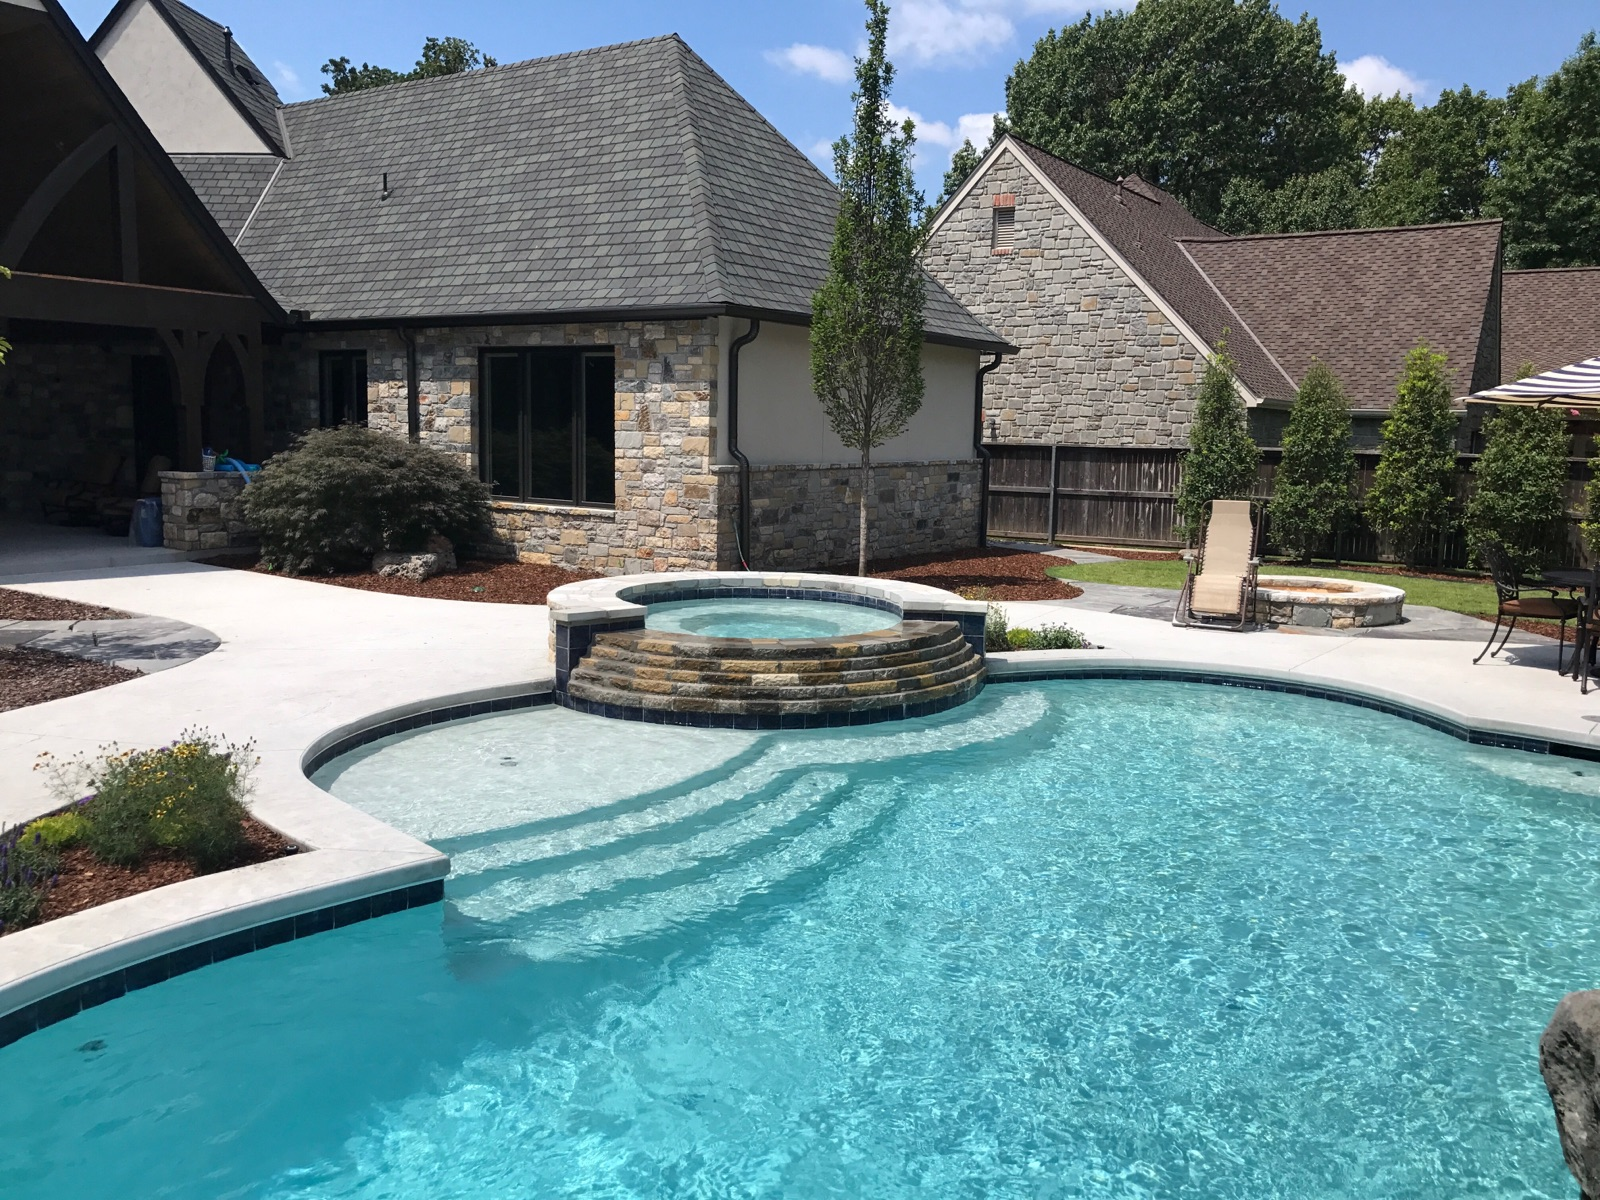 HUNTER'S HILLS - Vivion Pools and Spas - Custom Built In ... on Outdoor Living Pool And Spa id=86636